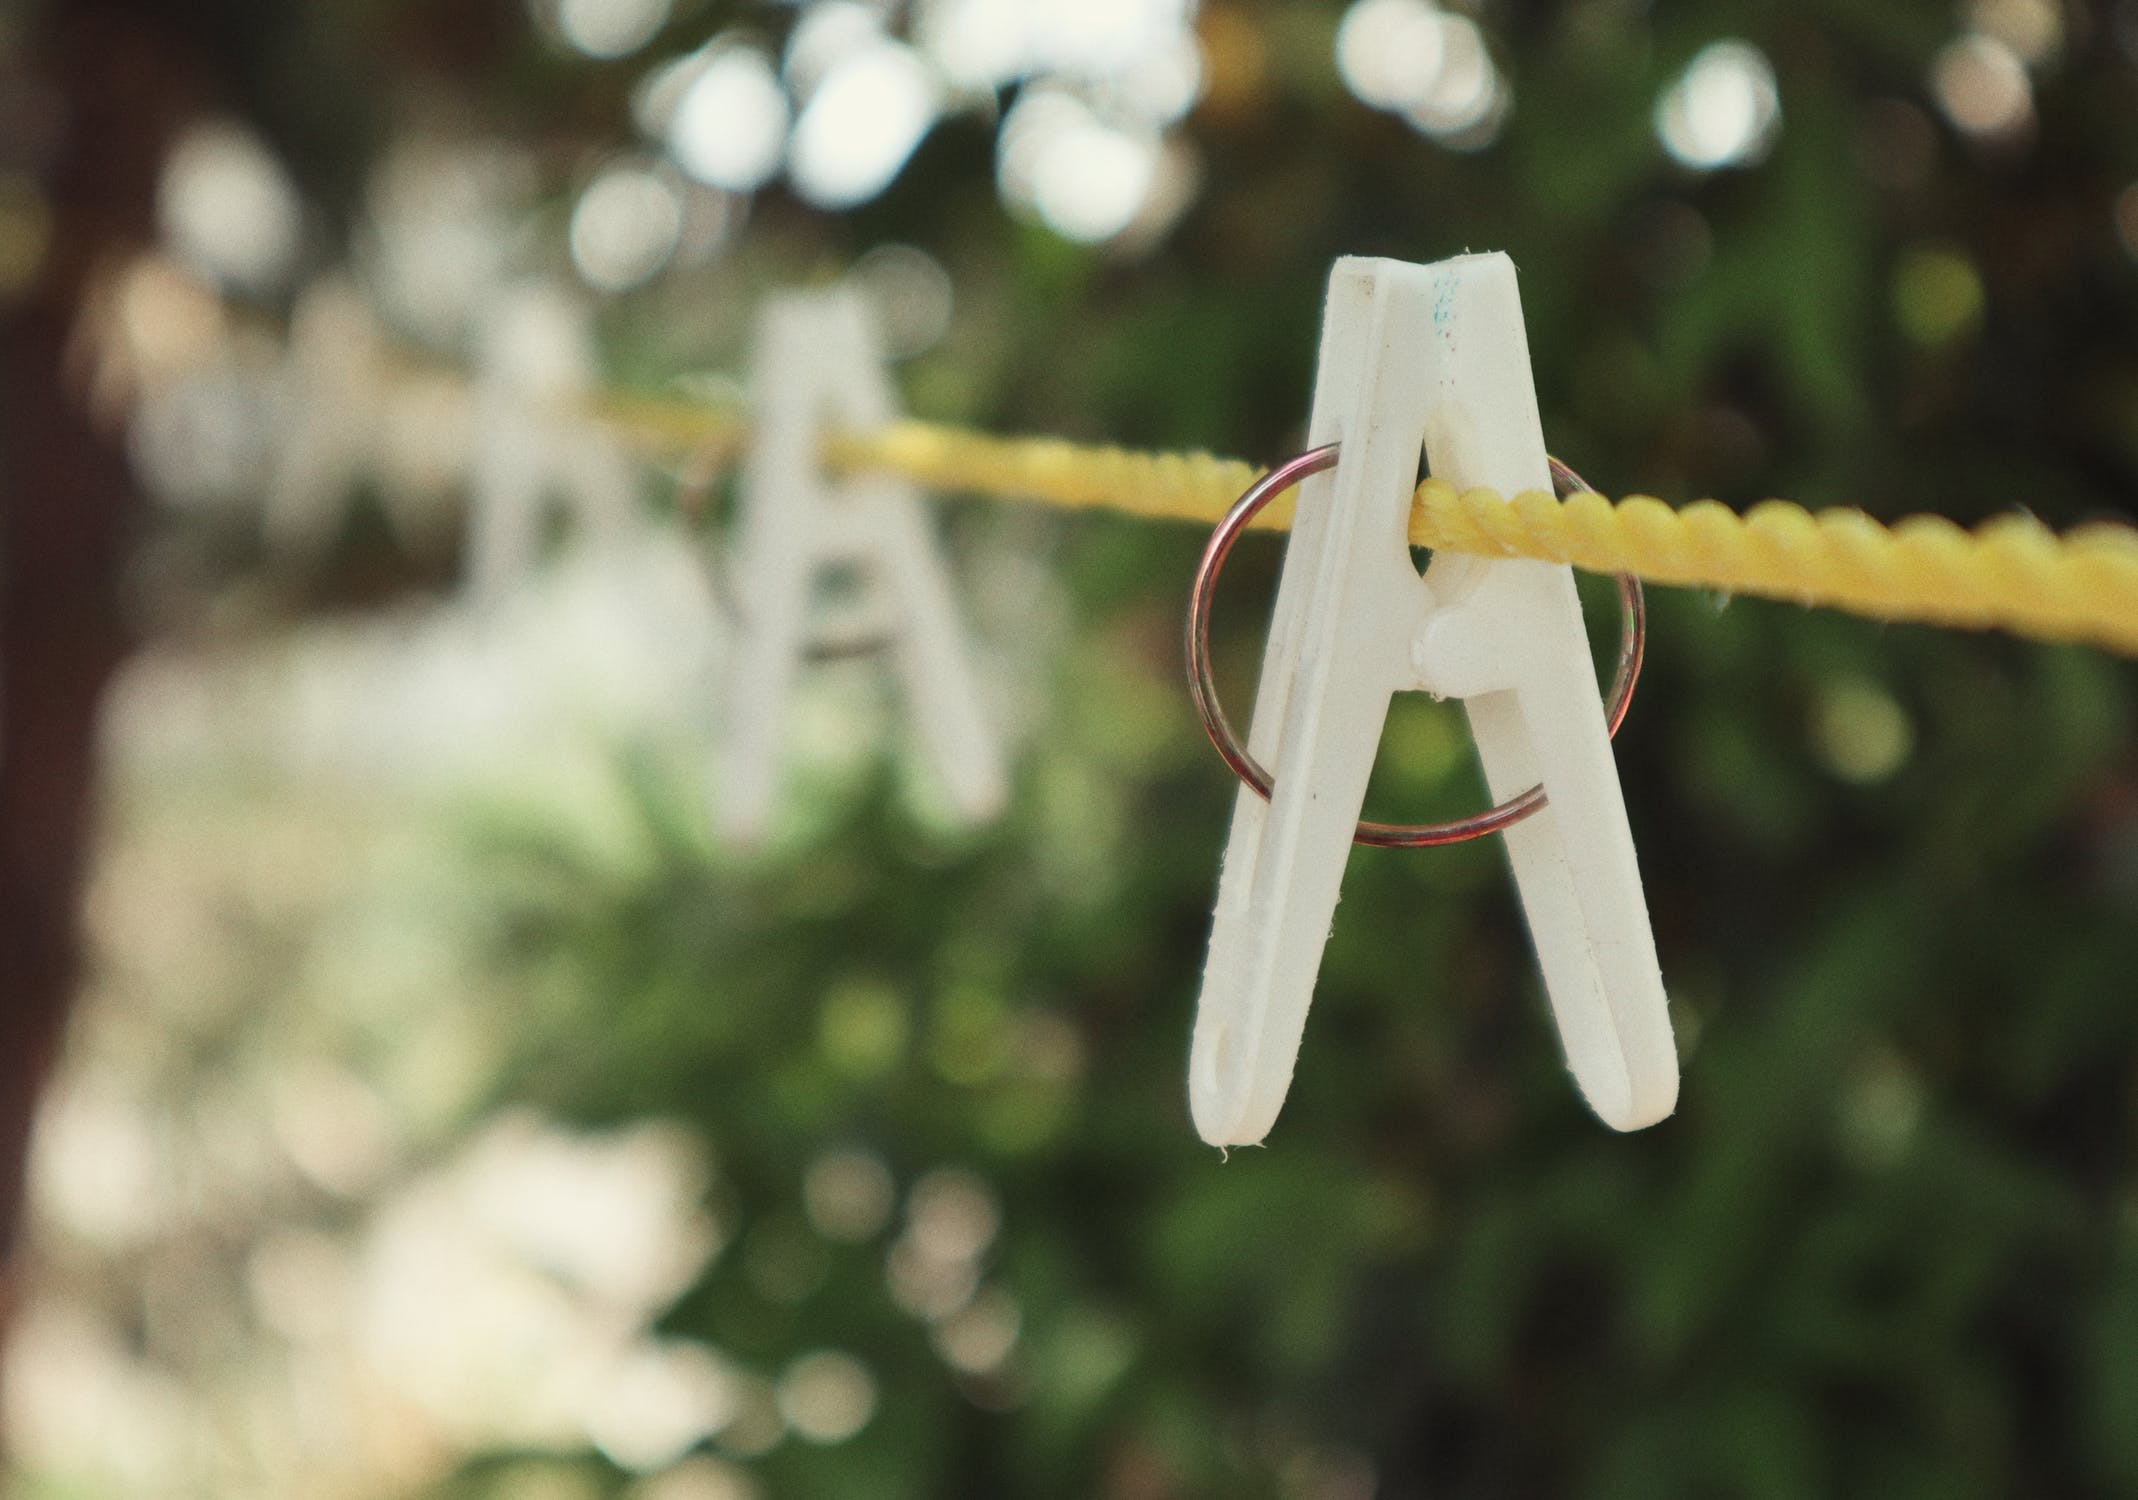 Candle Subscription Box Preview - Washing Line With Pegs